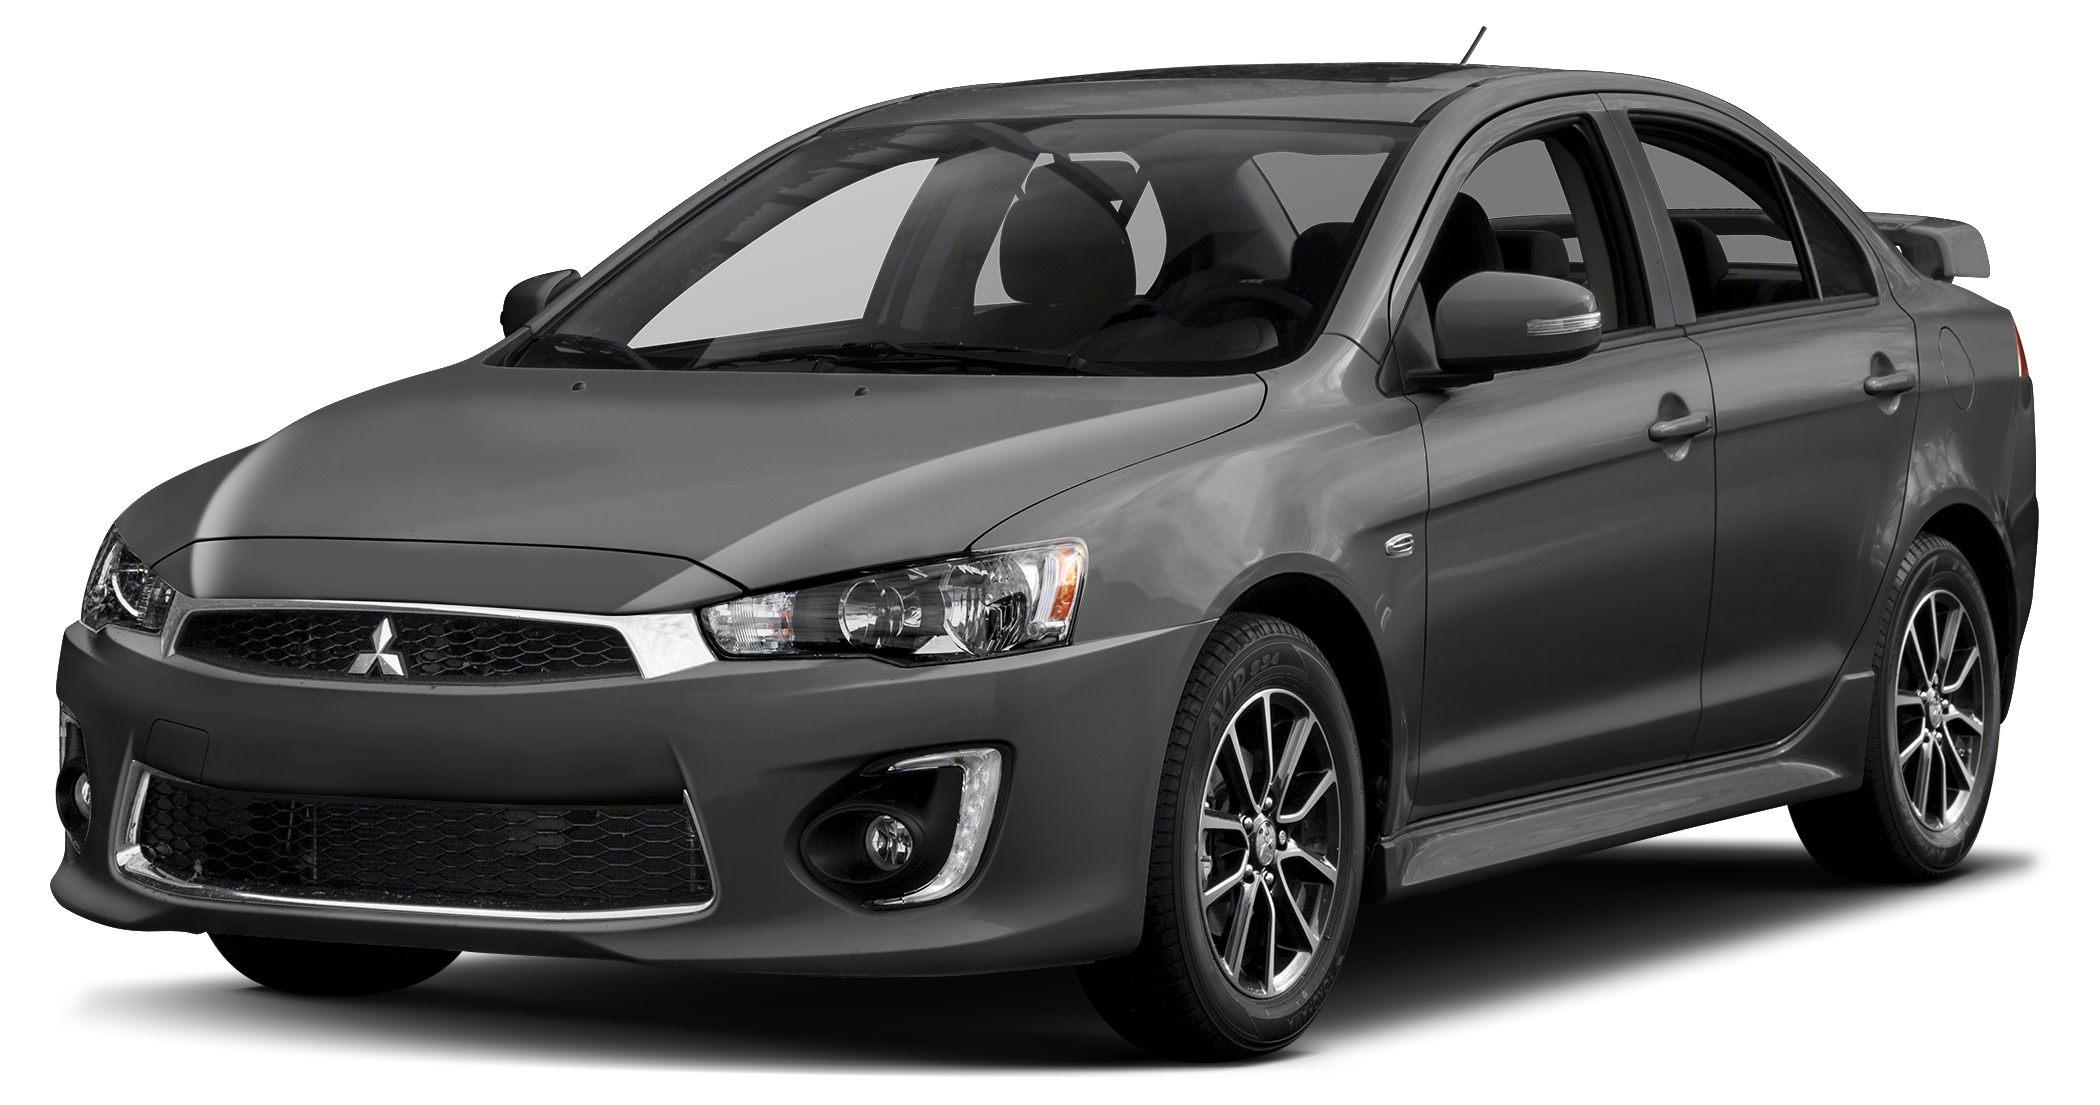 2016 Mitsubishi Lancer ES Introducing the 2016 Mitsubishi Lancer A great vehicle and a great valu